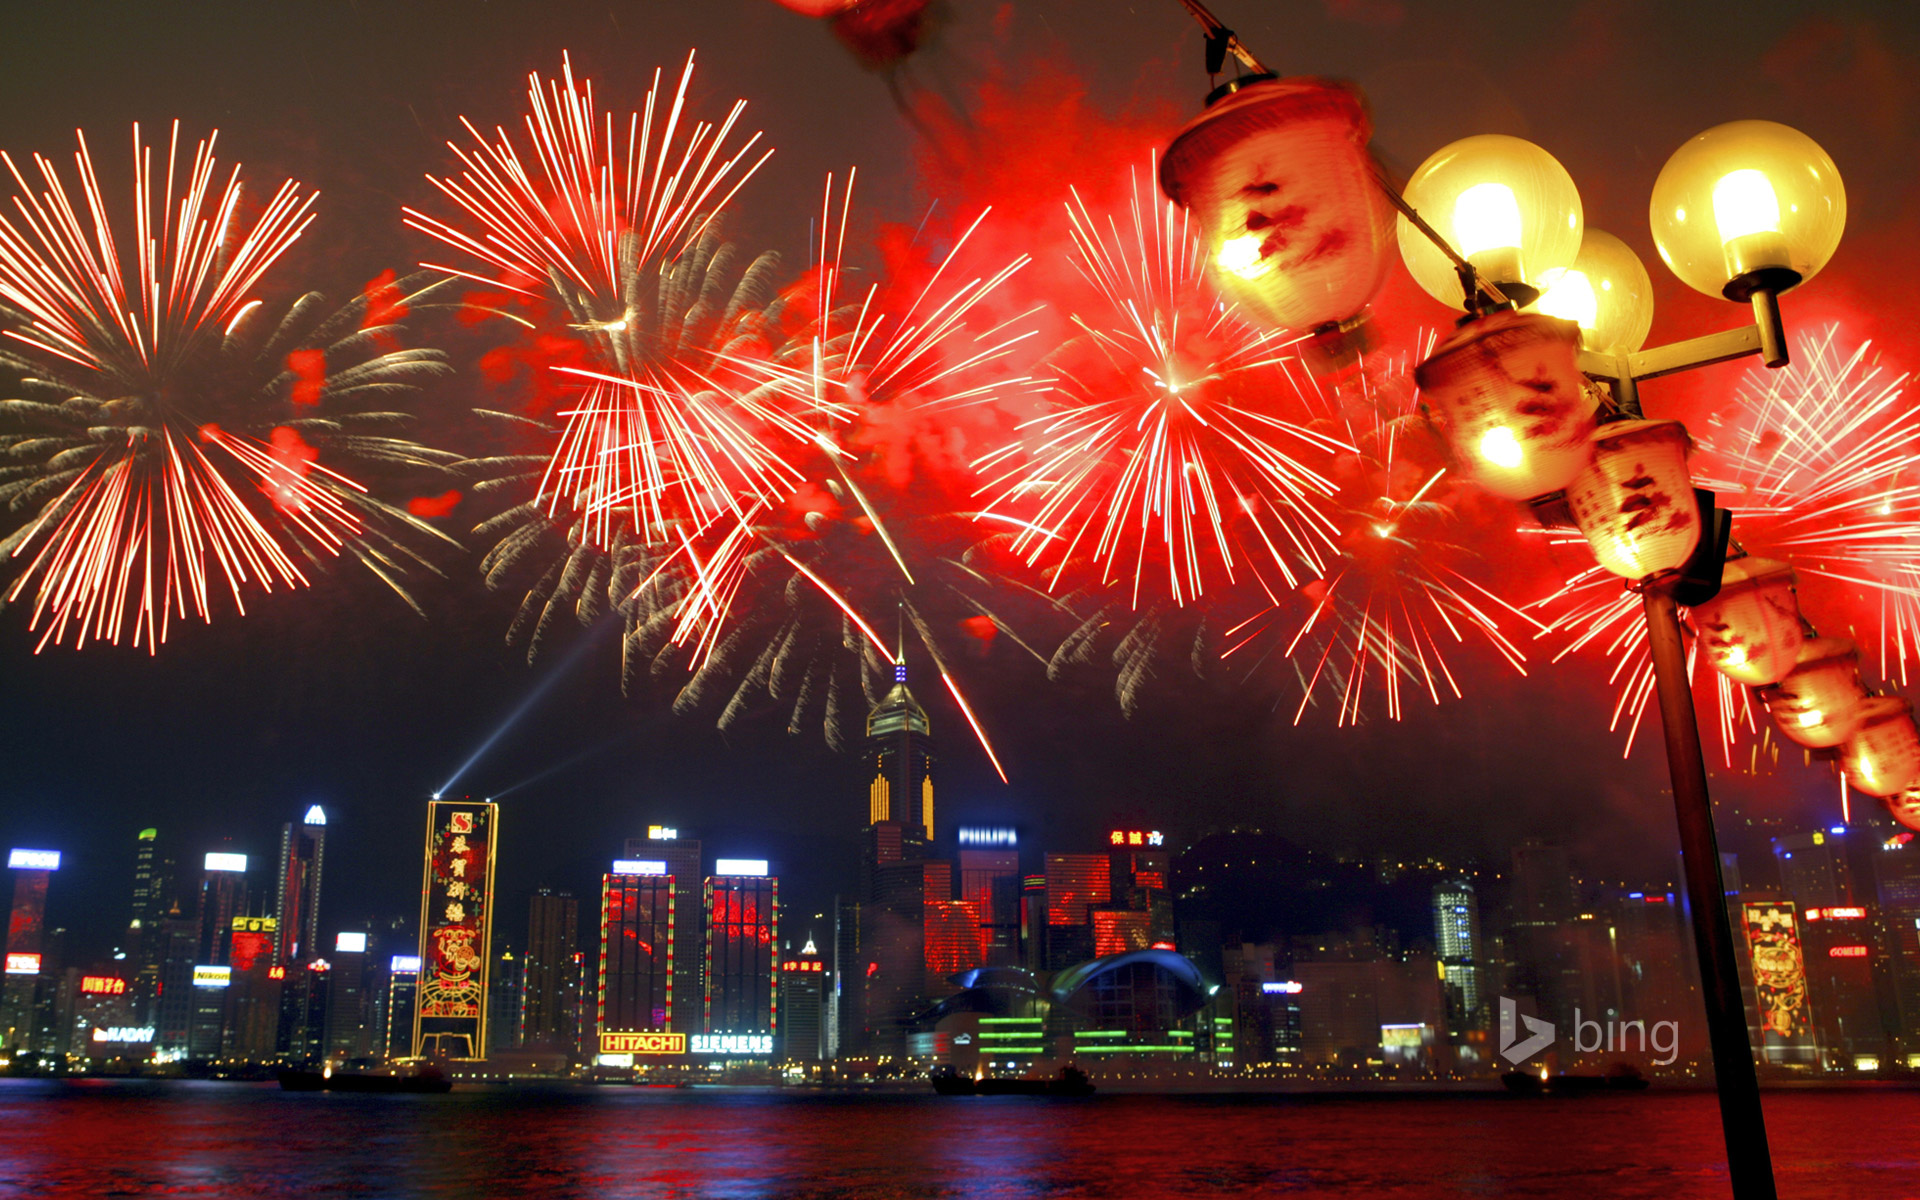 Fireworks in Victoria Harbour during Chinese New Year festivities, Hong Kong, China